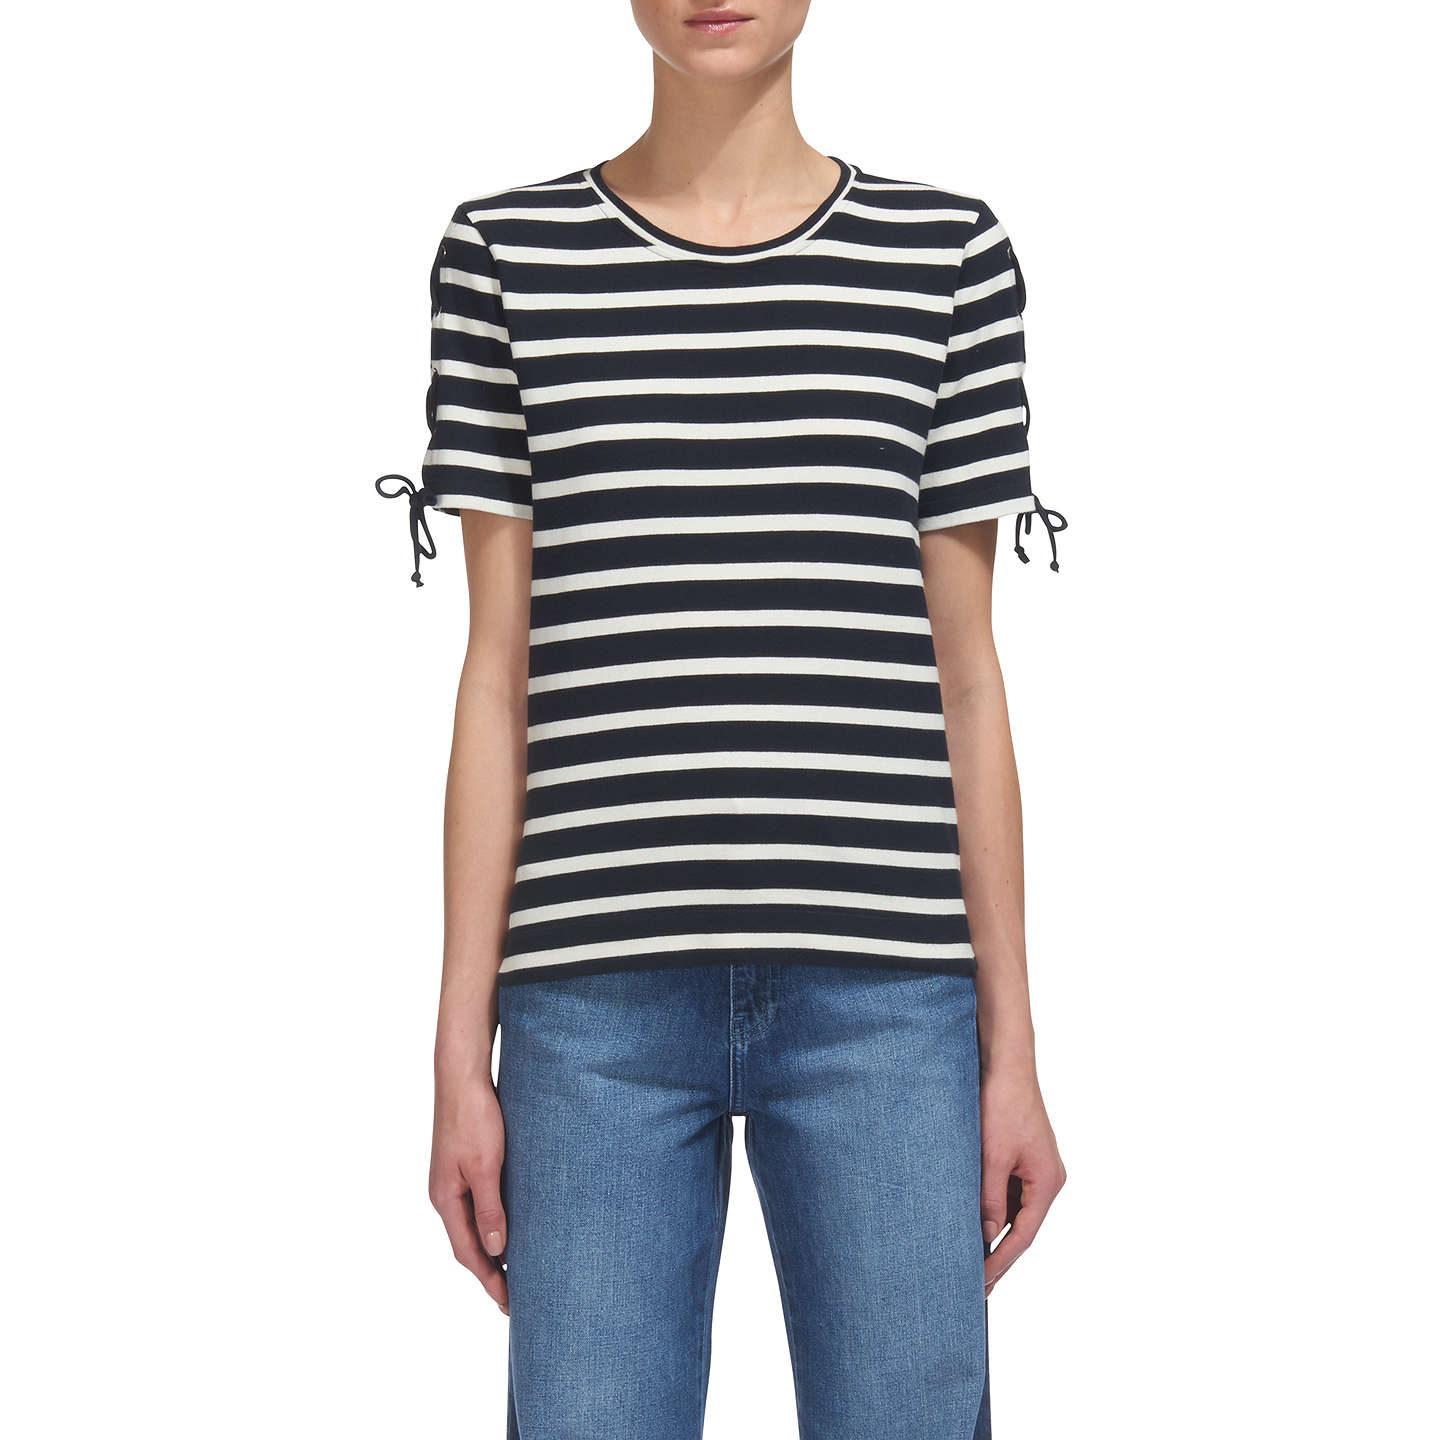 BuyWhistles Stripe Lacing Sleeve T-Shirt, White/Black, 6 Online at johnlewis.com